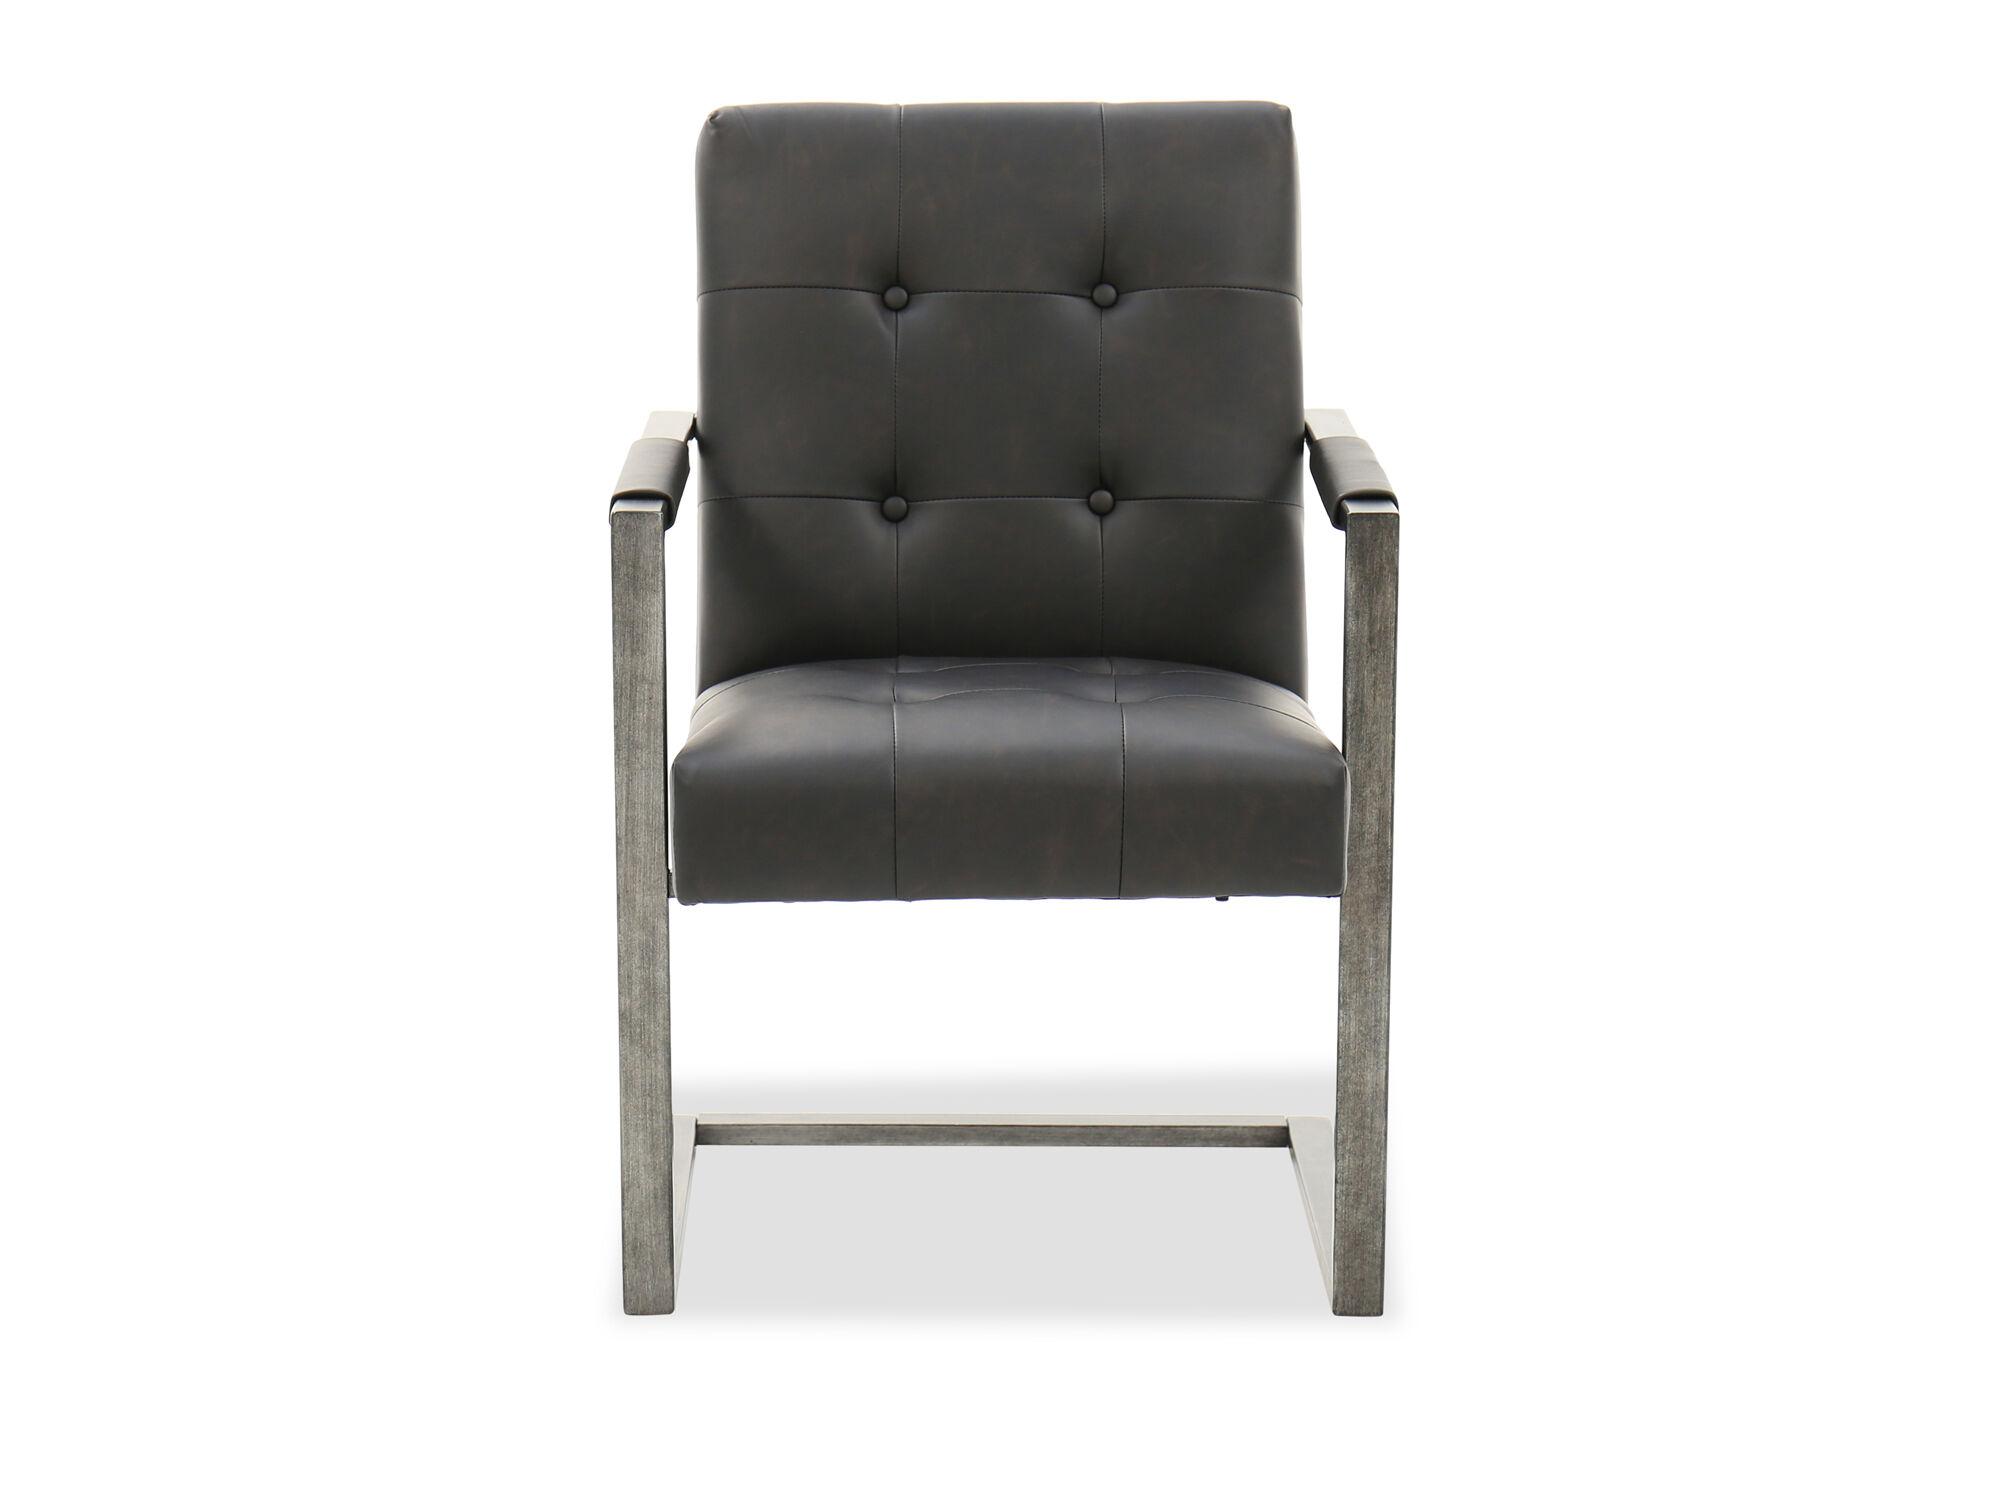 Button Tufted Desk Chair In Blackened Gunmetal Mathis Brothers